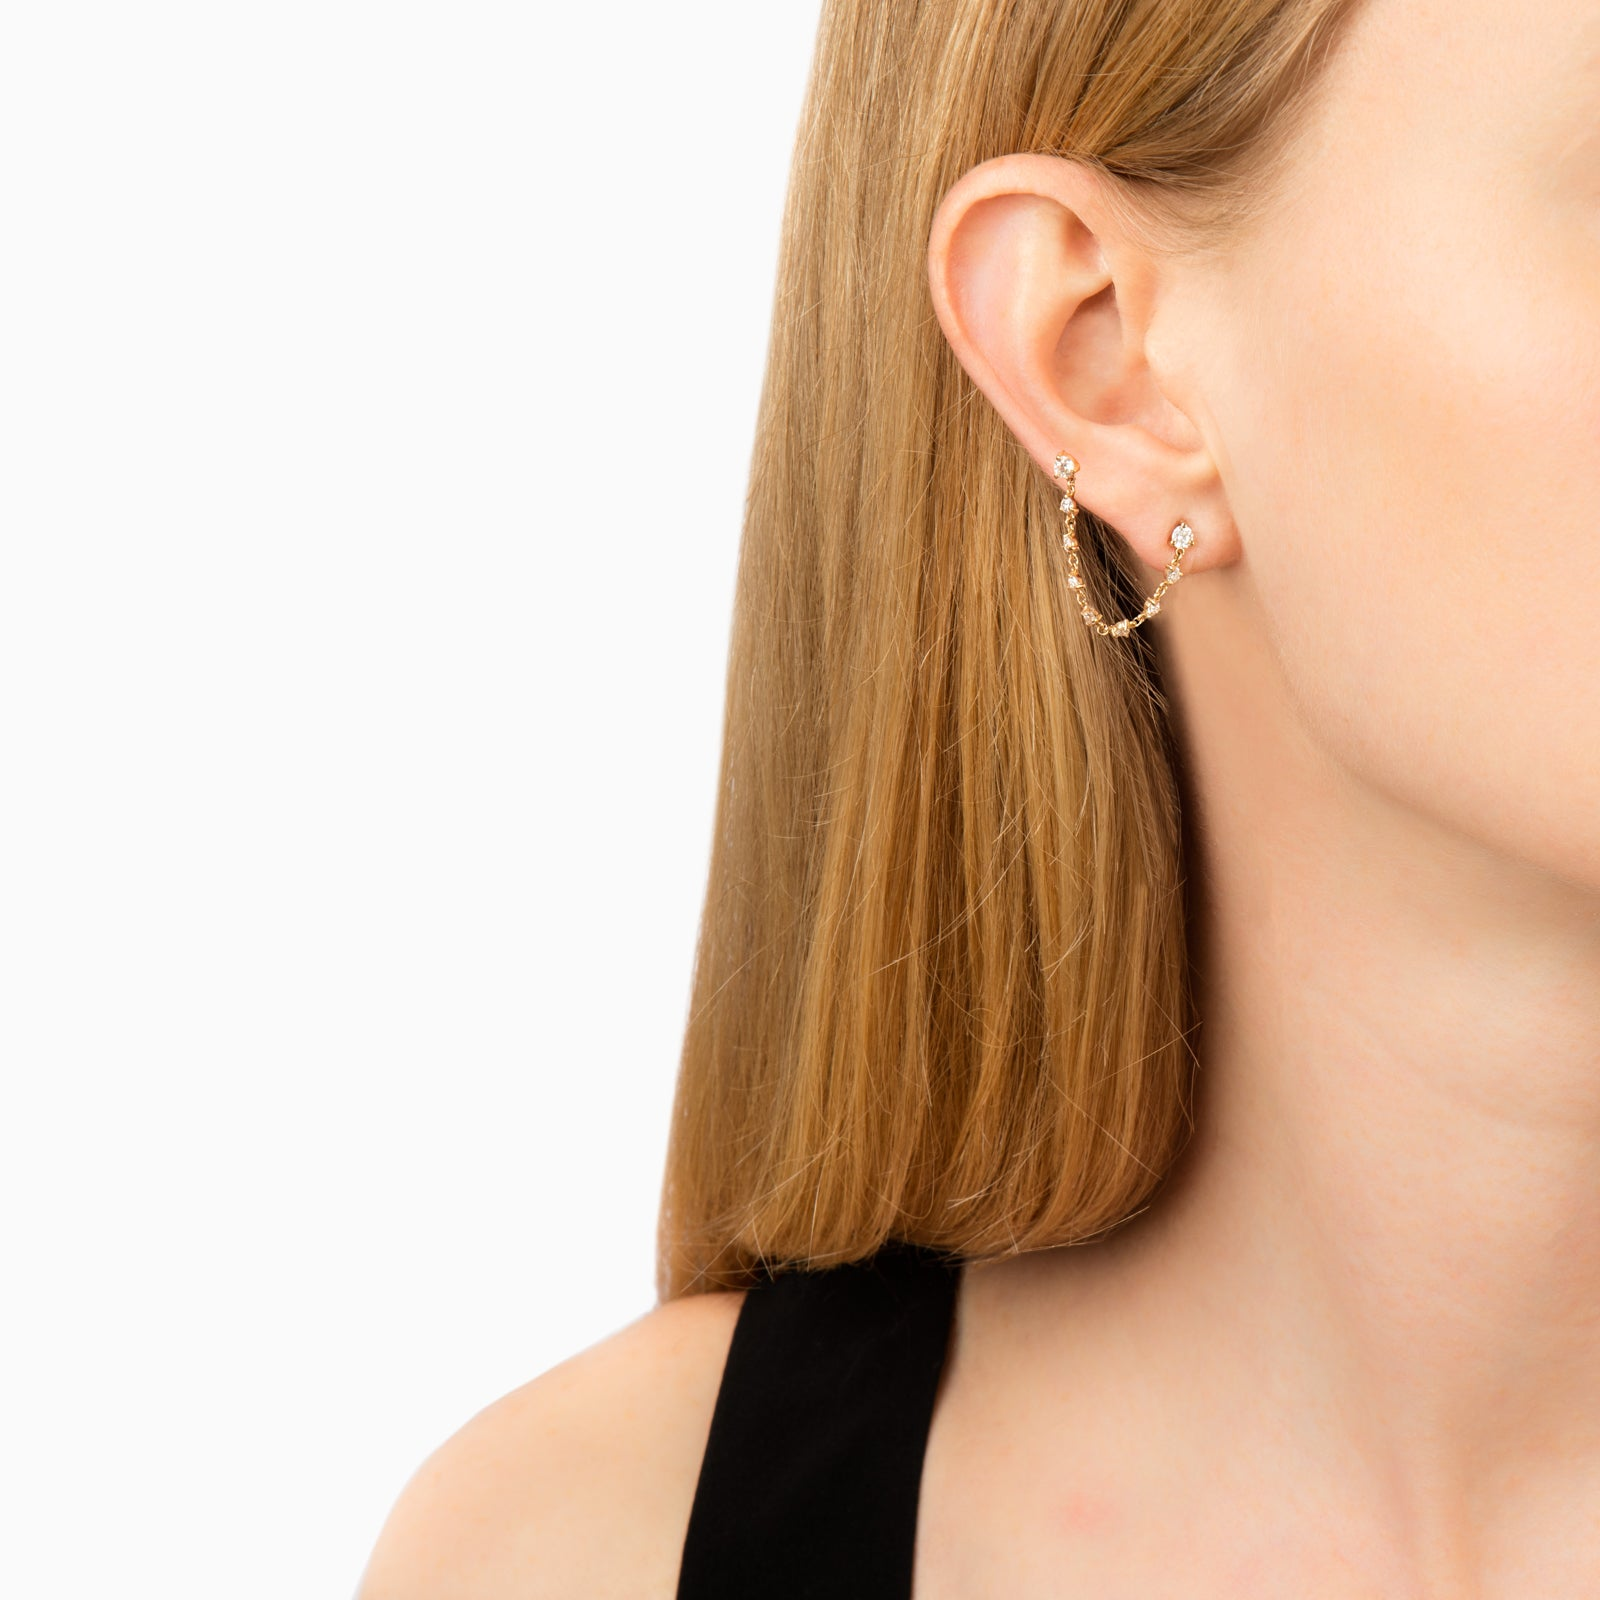 Carbon & Hyde Princess Ear Chain - Gold - Earrings - Broken English Jewelry